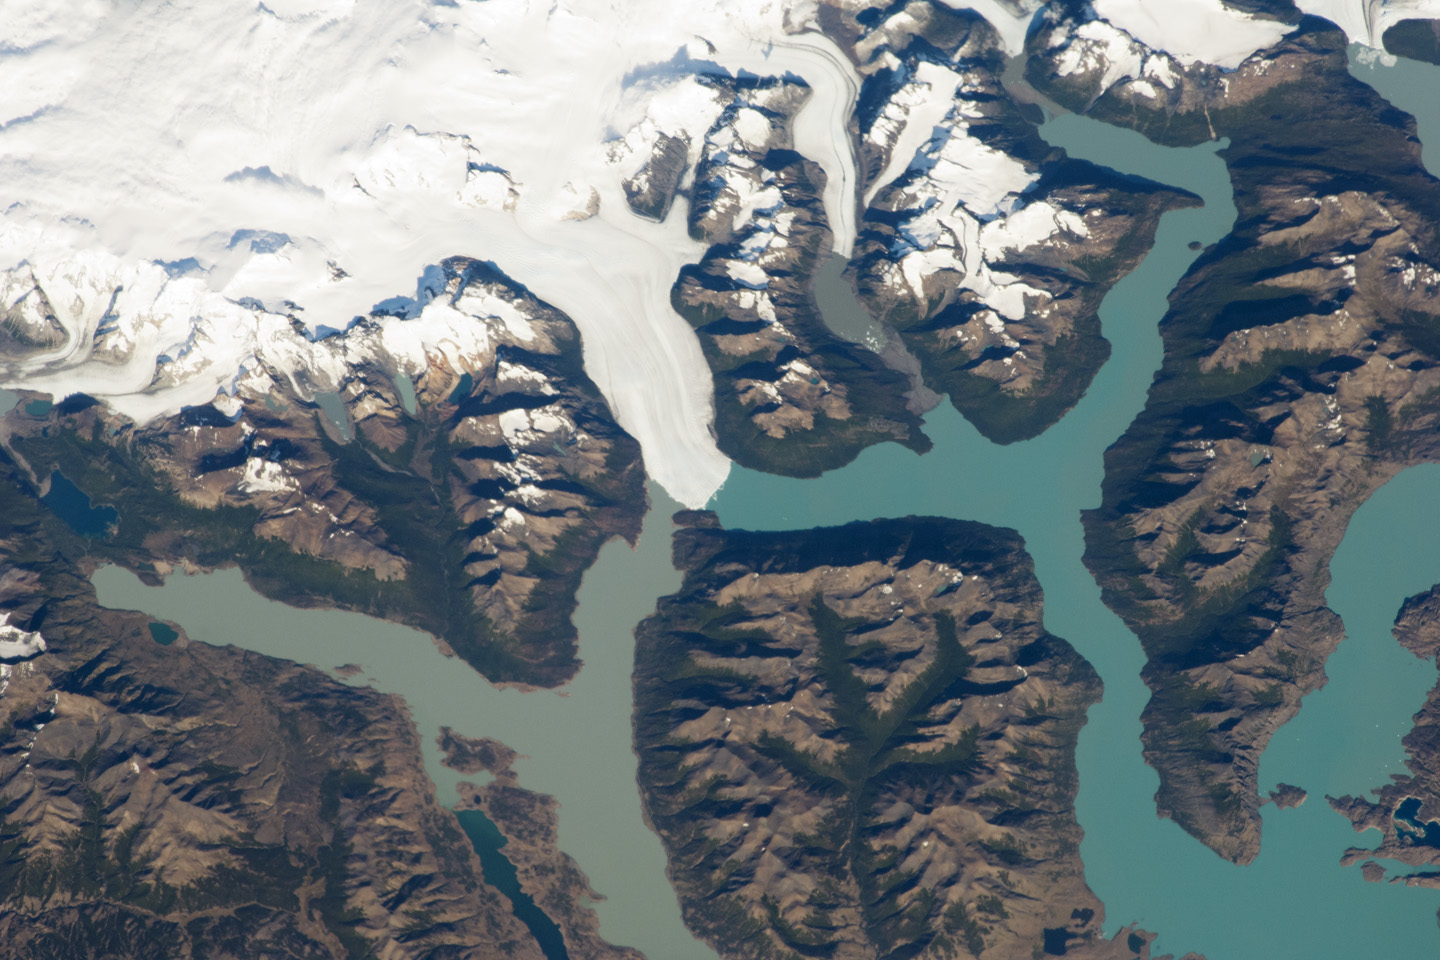 Today's Image of the Day comes thanks to the NASA Earth Observatory and features a look at the Perito Moreno Glacier in Argentina.